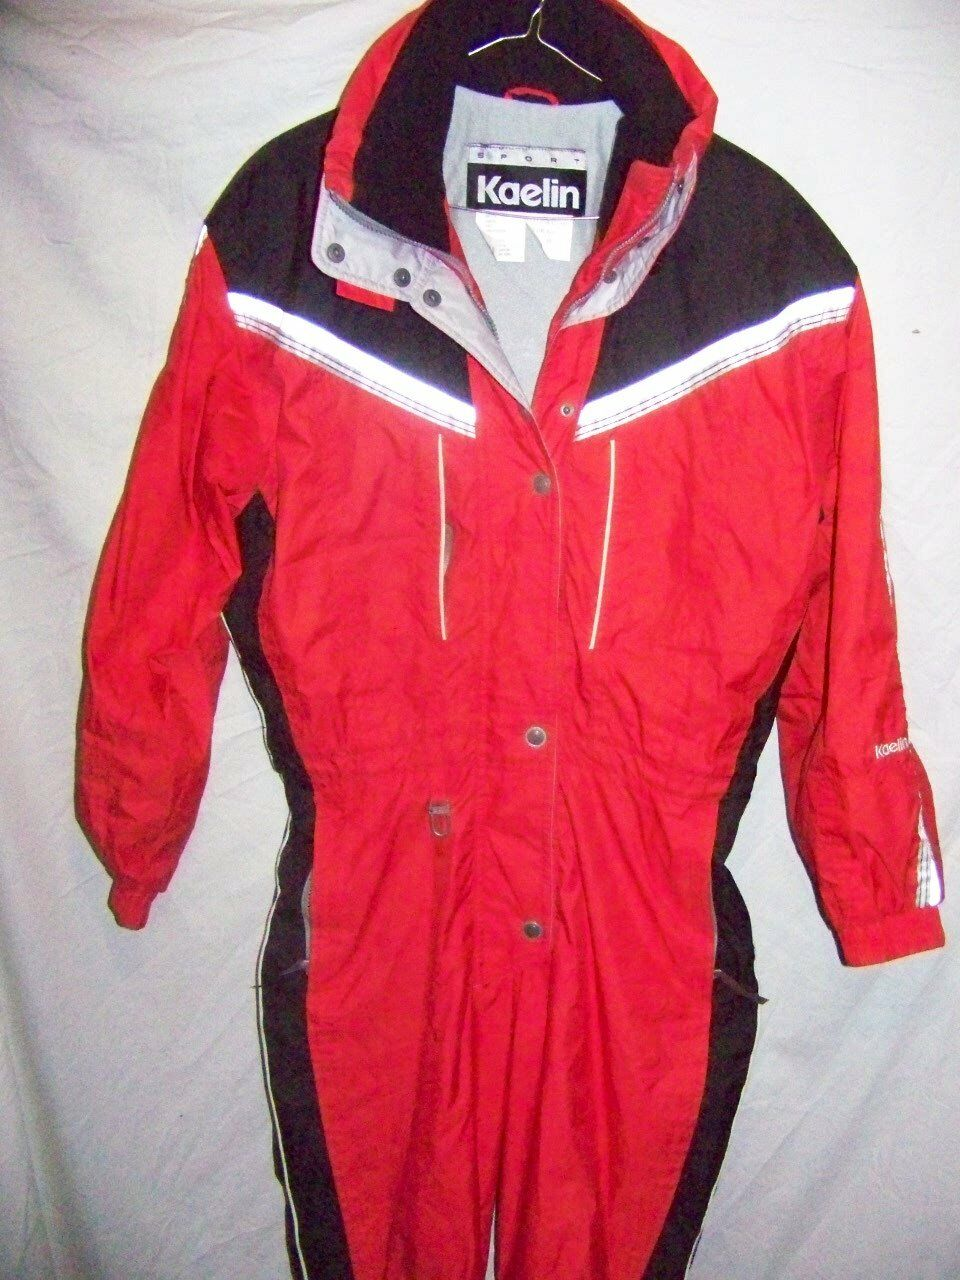 Vintage Kaelin Insulated One Piece Snow Ski Suit, Women's 10